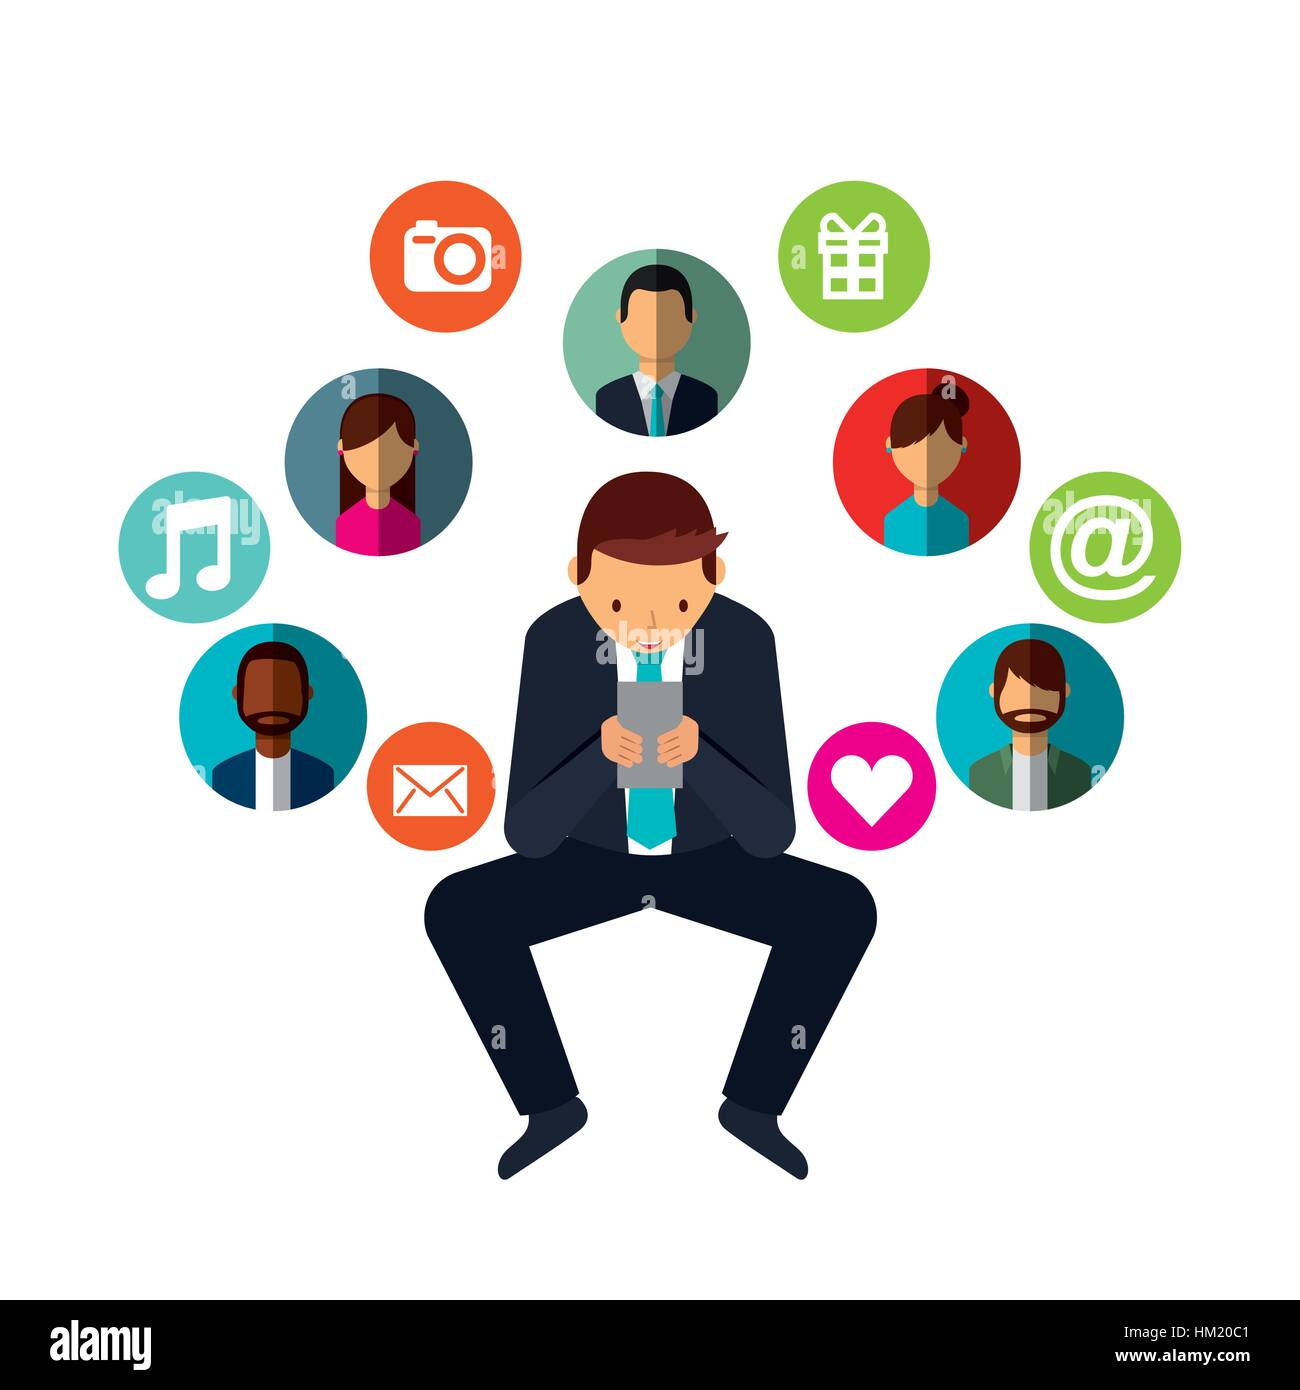 """how social media influences your shopping essay Artículo del libro change: 19 key essays on how the internet is changing our   the impact of social media applications has triggered discussion of the """"new   like studying and shopping they have affected the economy by nurturing the."""